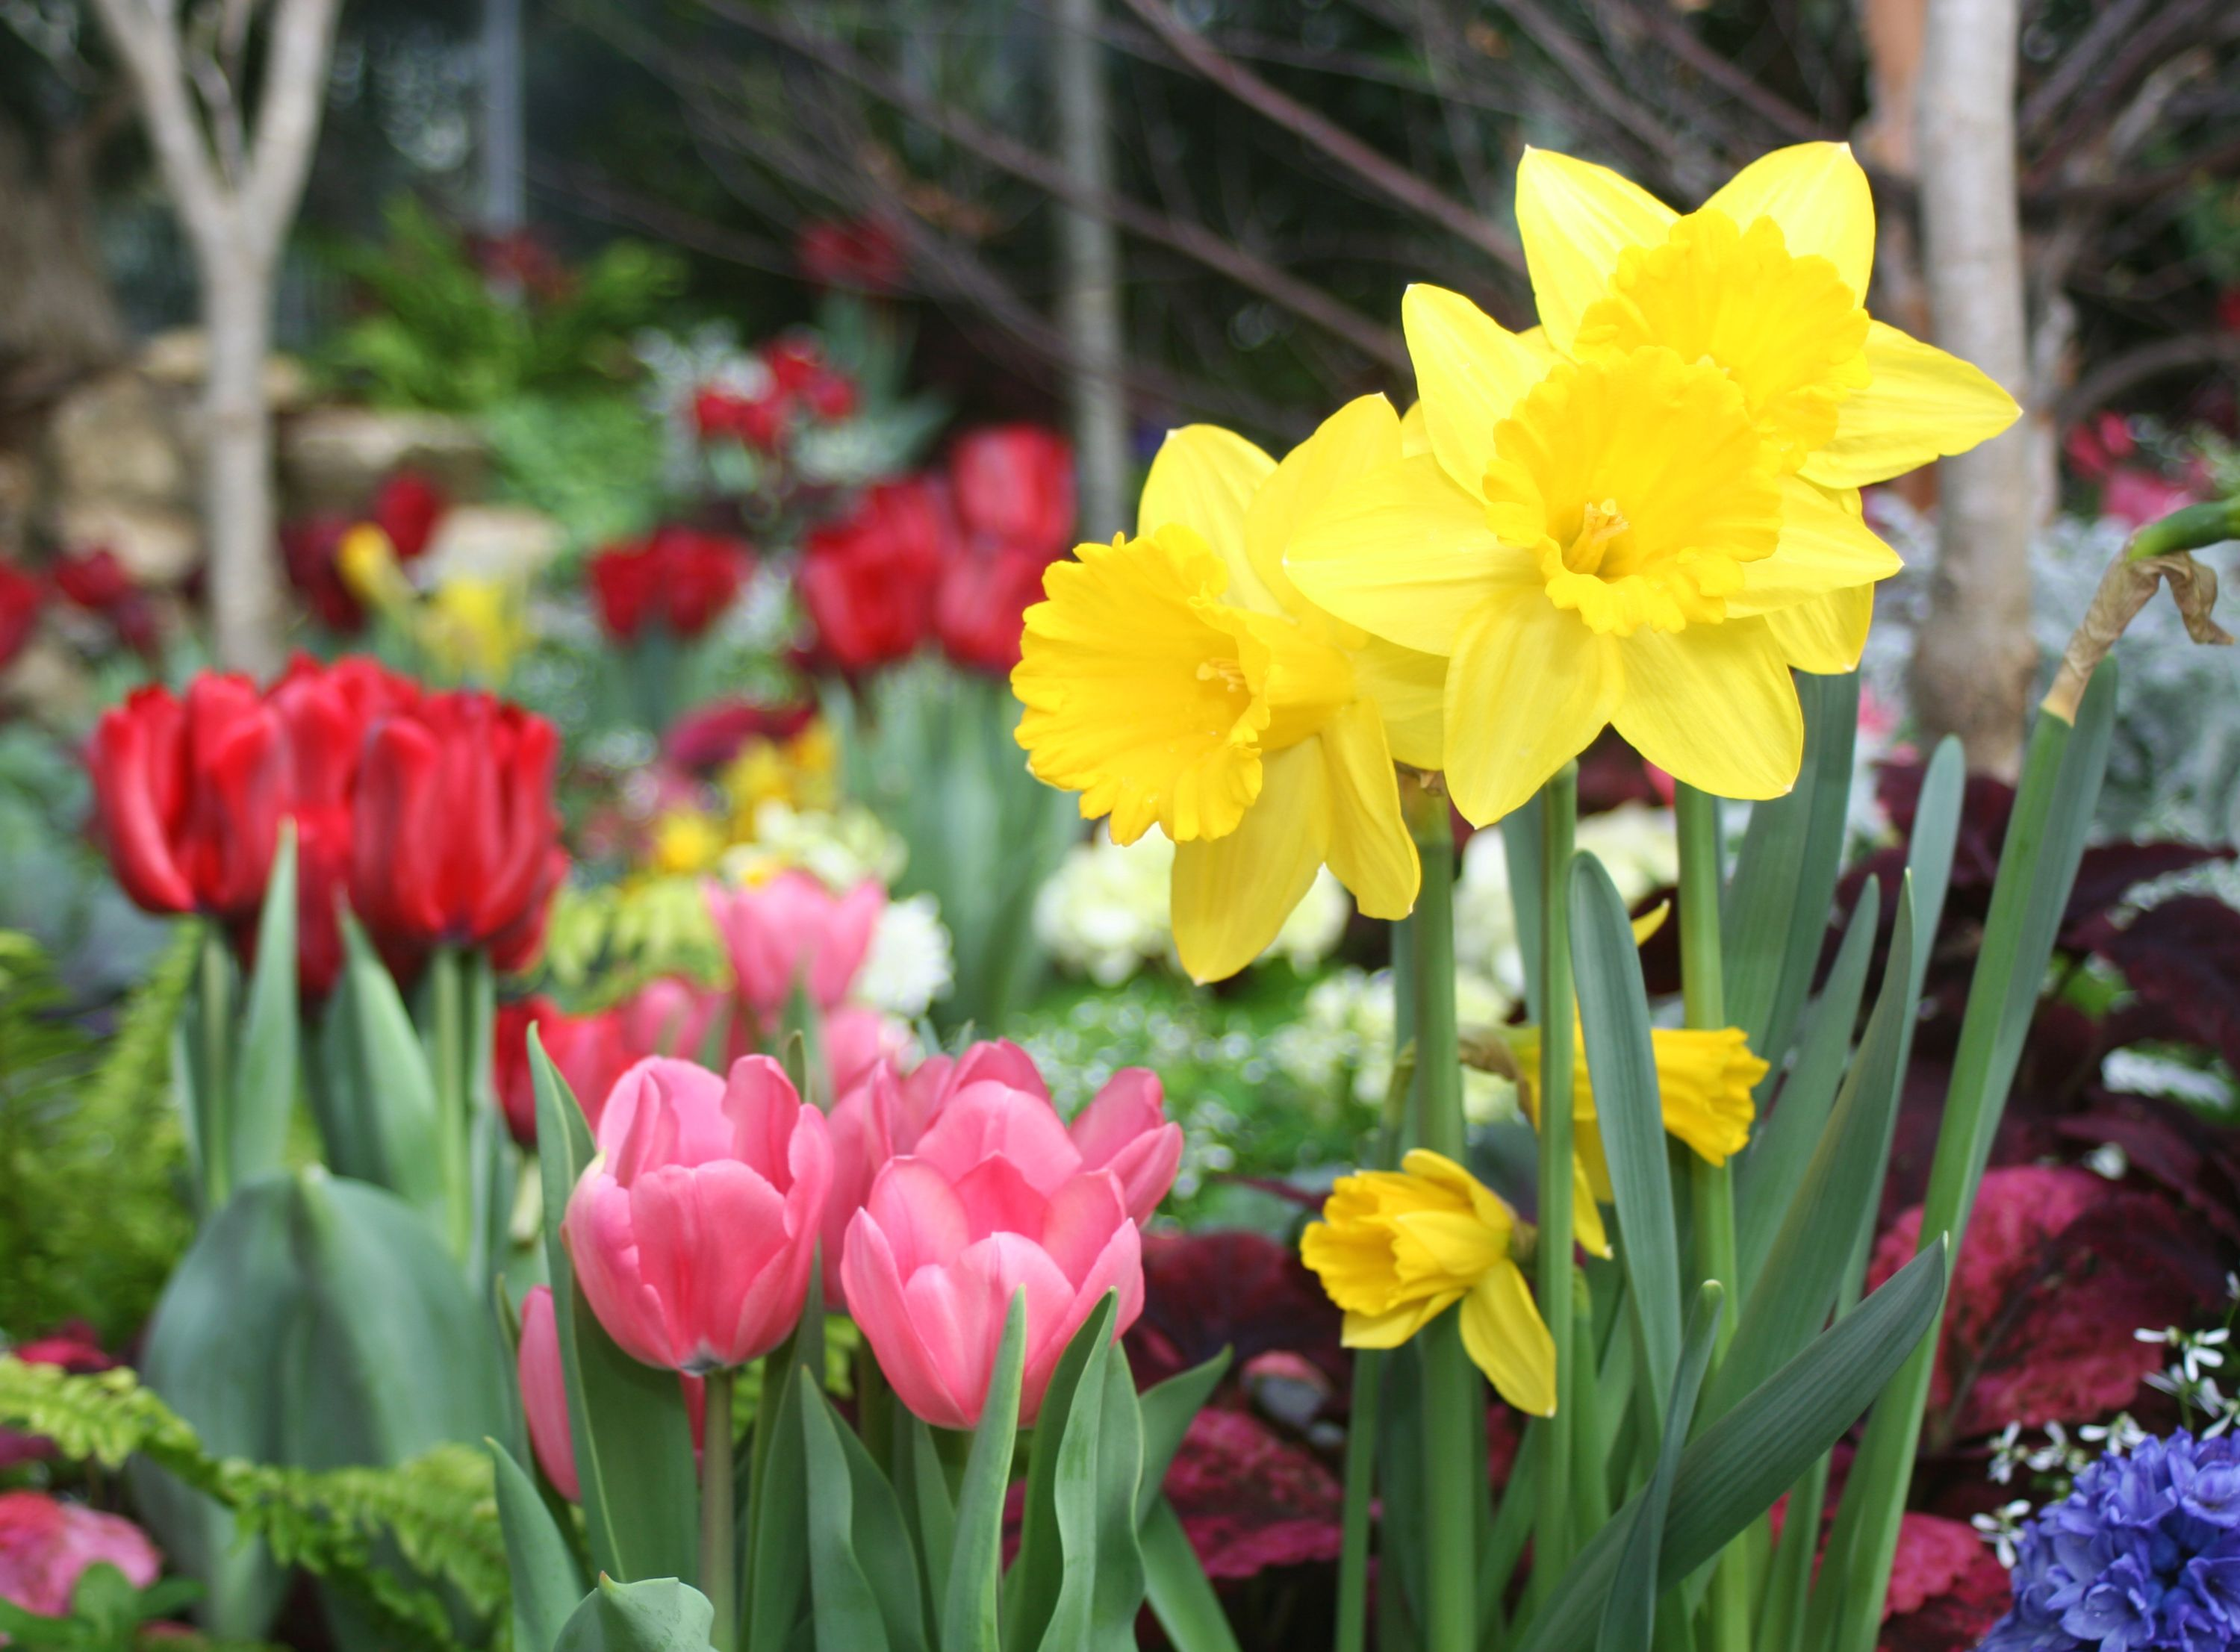 11 Best Flowers to Plant for Spring - When to Plant Daffodils ...